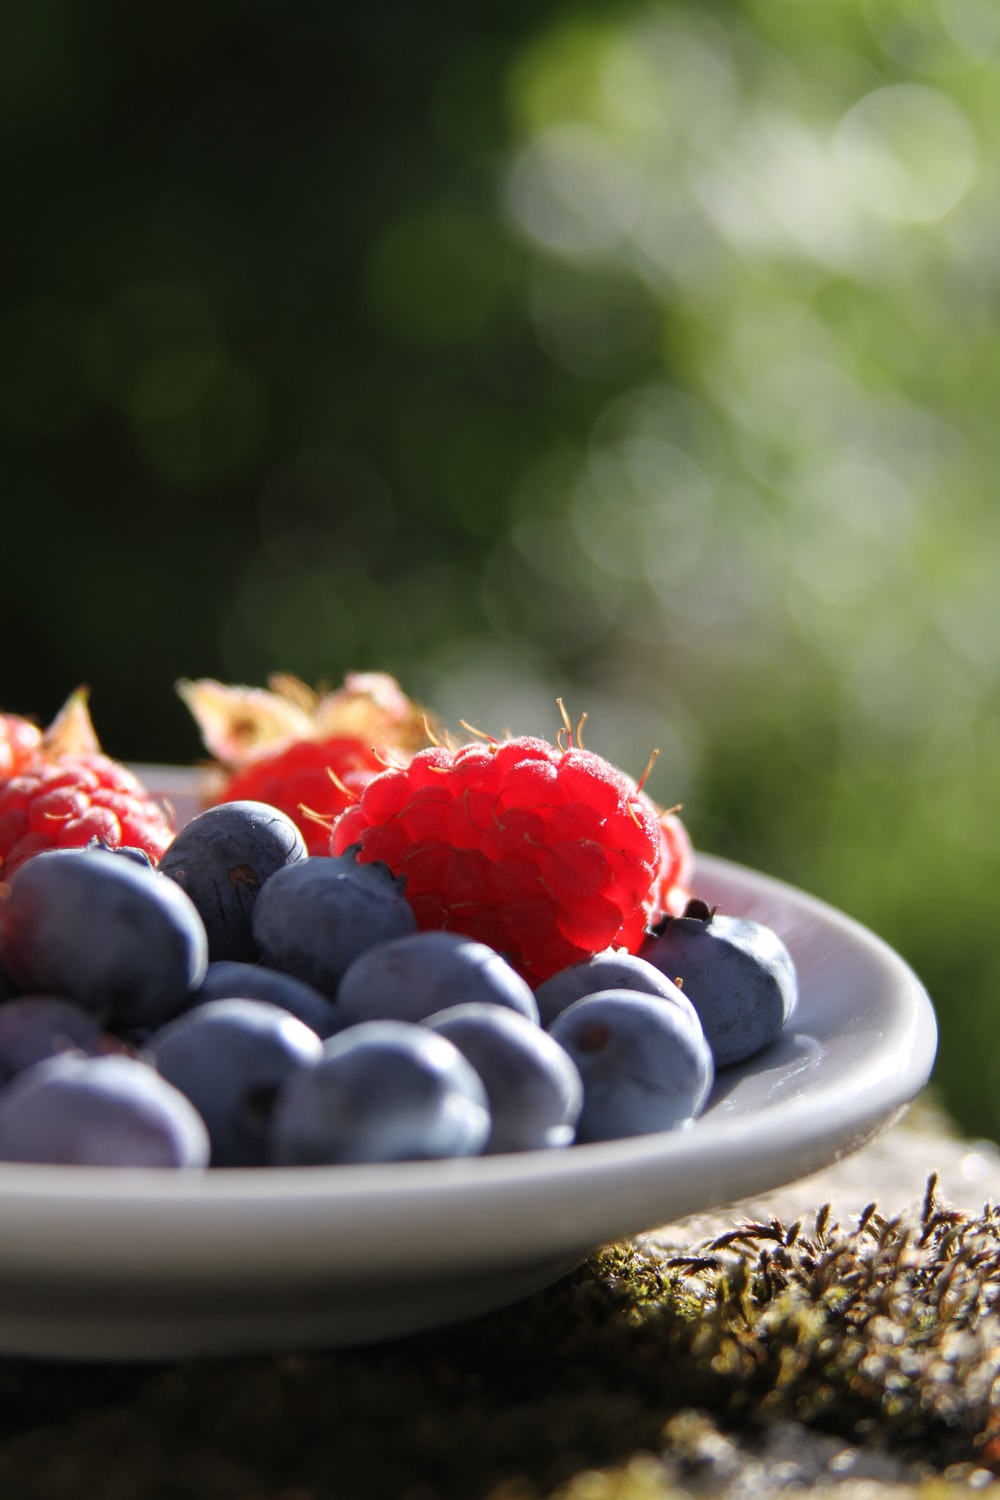 beautiful plate of raspberry and blueberry sits in the summer fields.